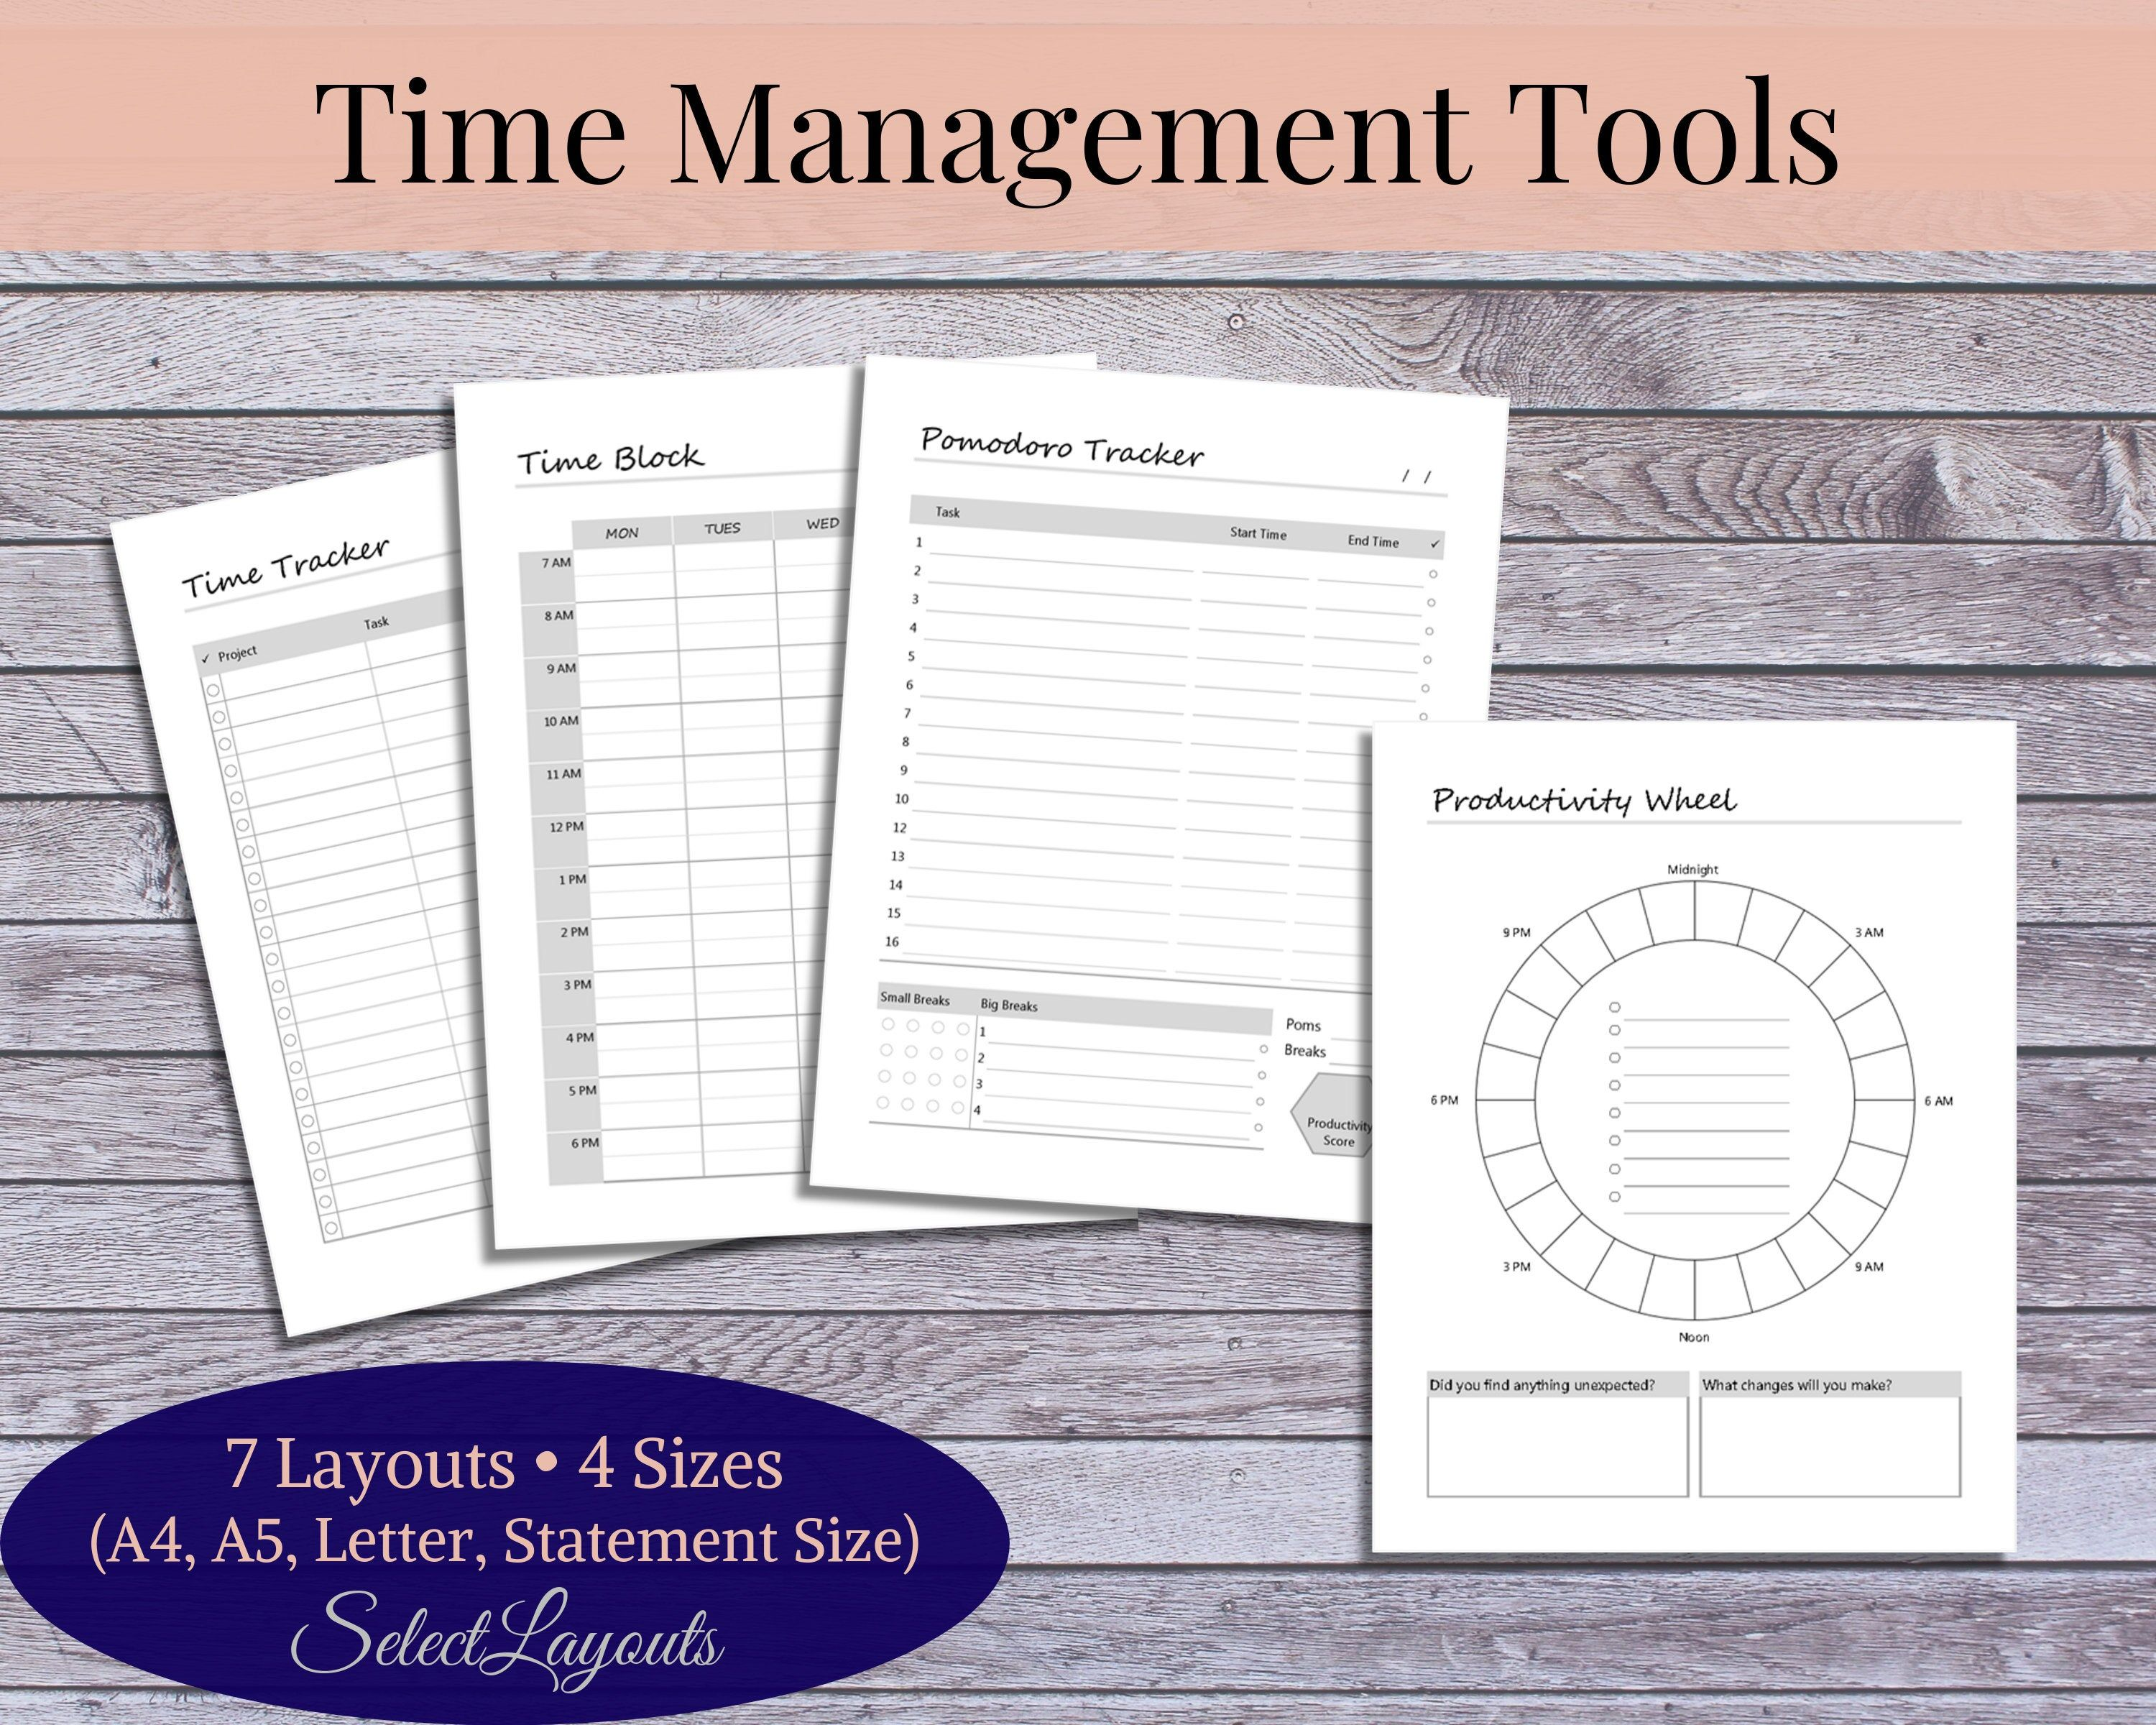 Time Management Tools Printable Template With